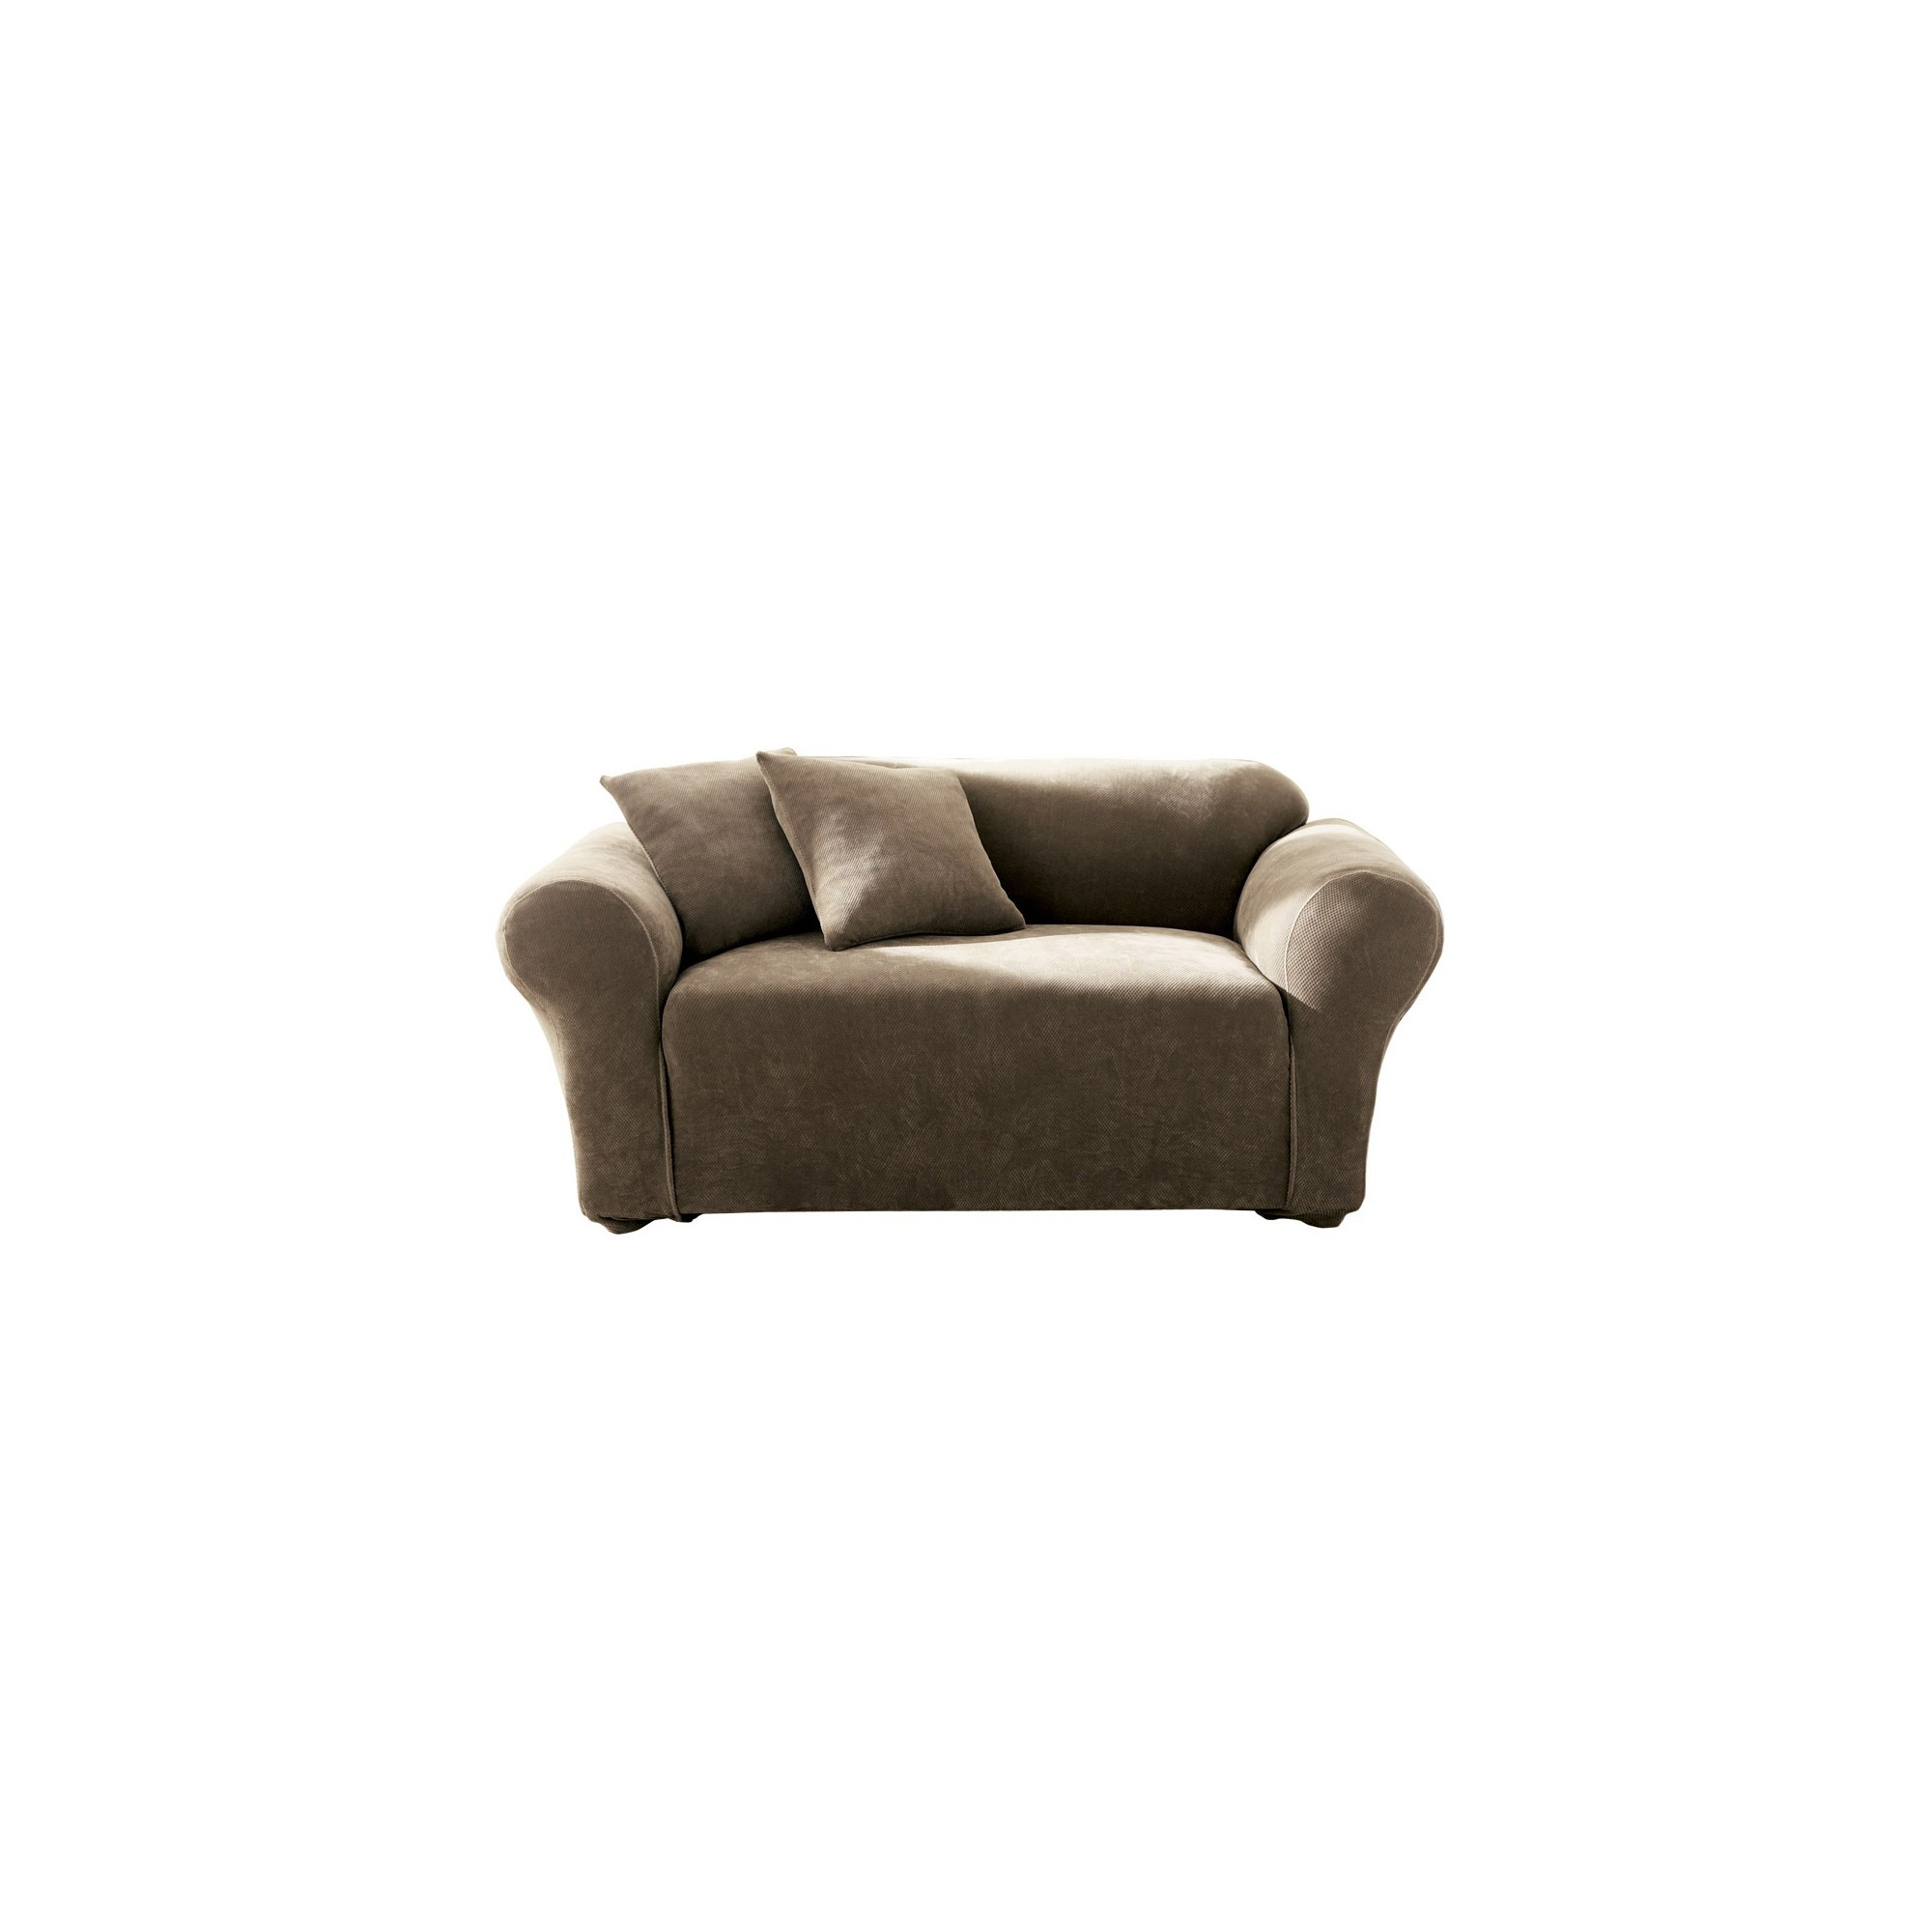 Stretch Pique Loveseat Slipcover Taupe - Sure Fit, Brown